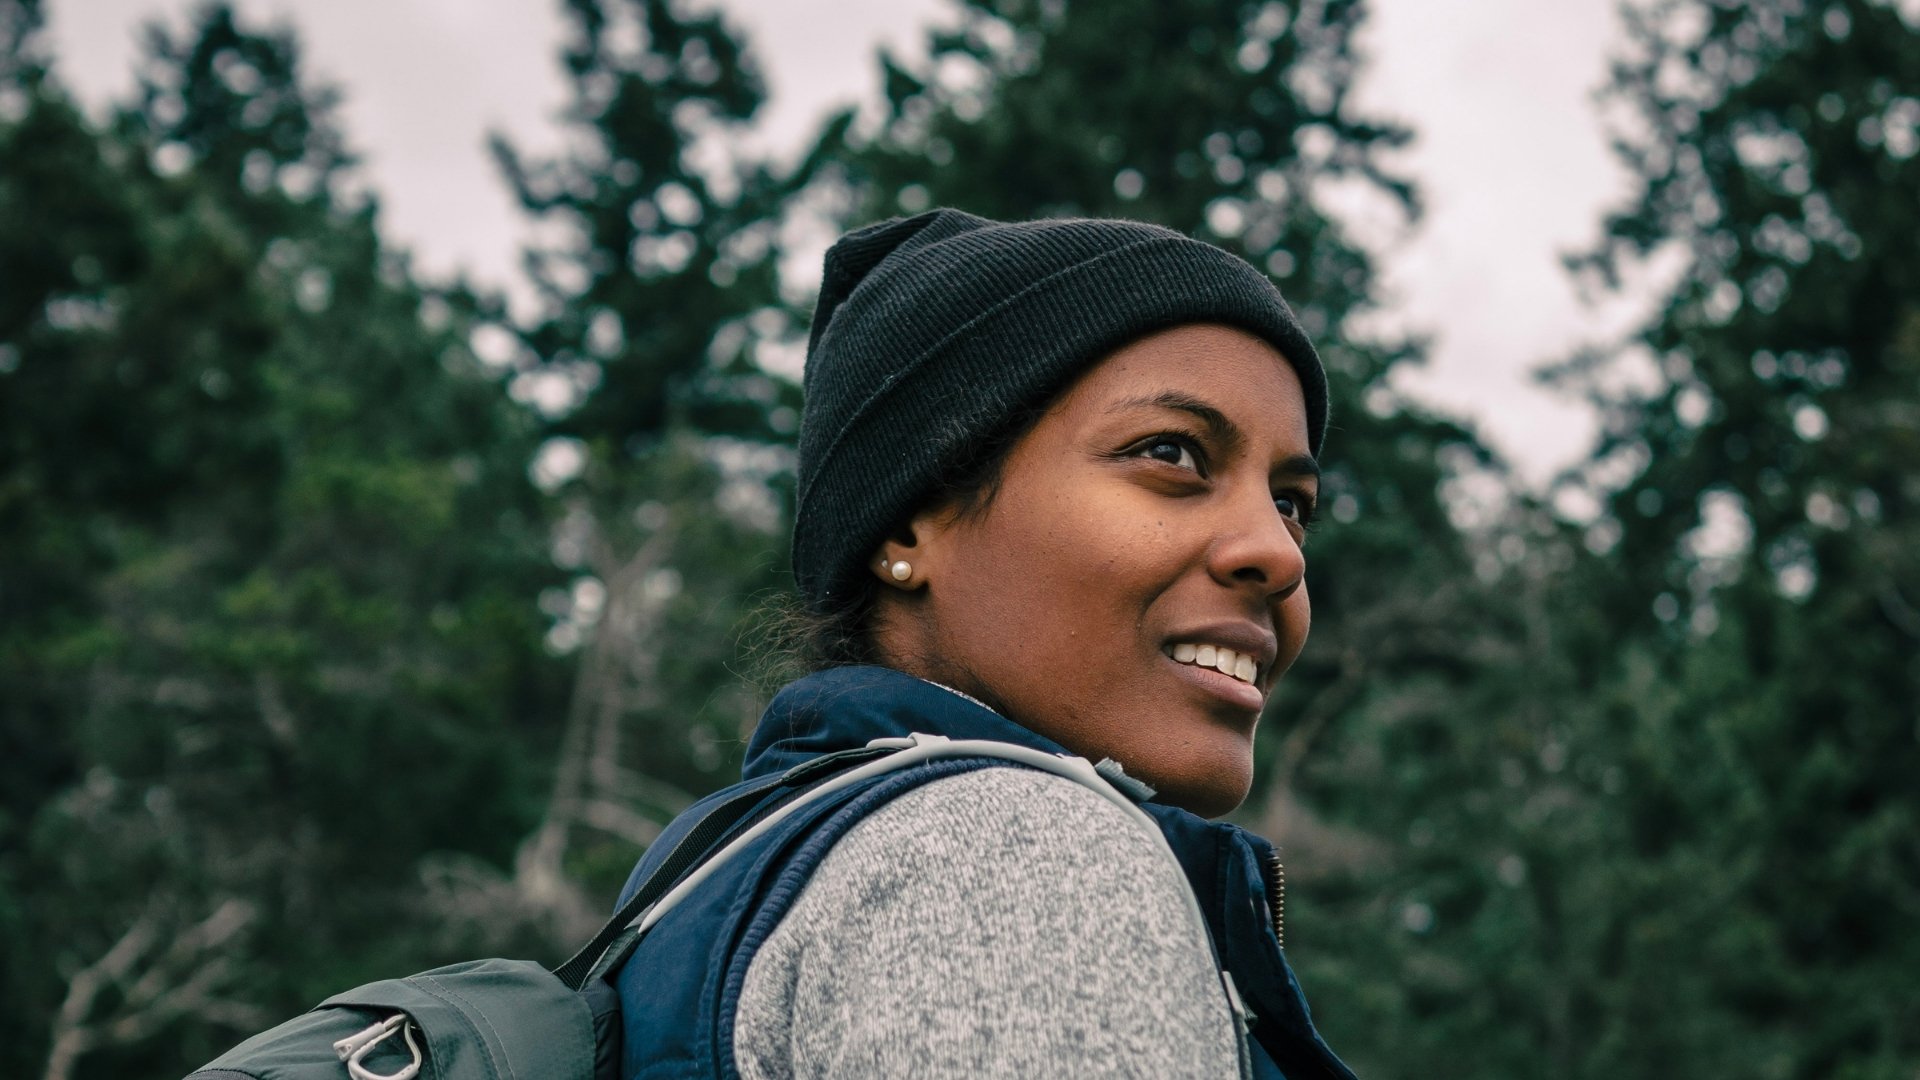 A woman wearing a black beanie and grey shirt out in the forest